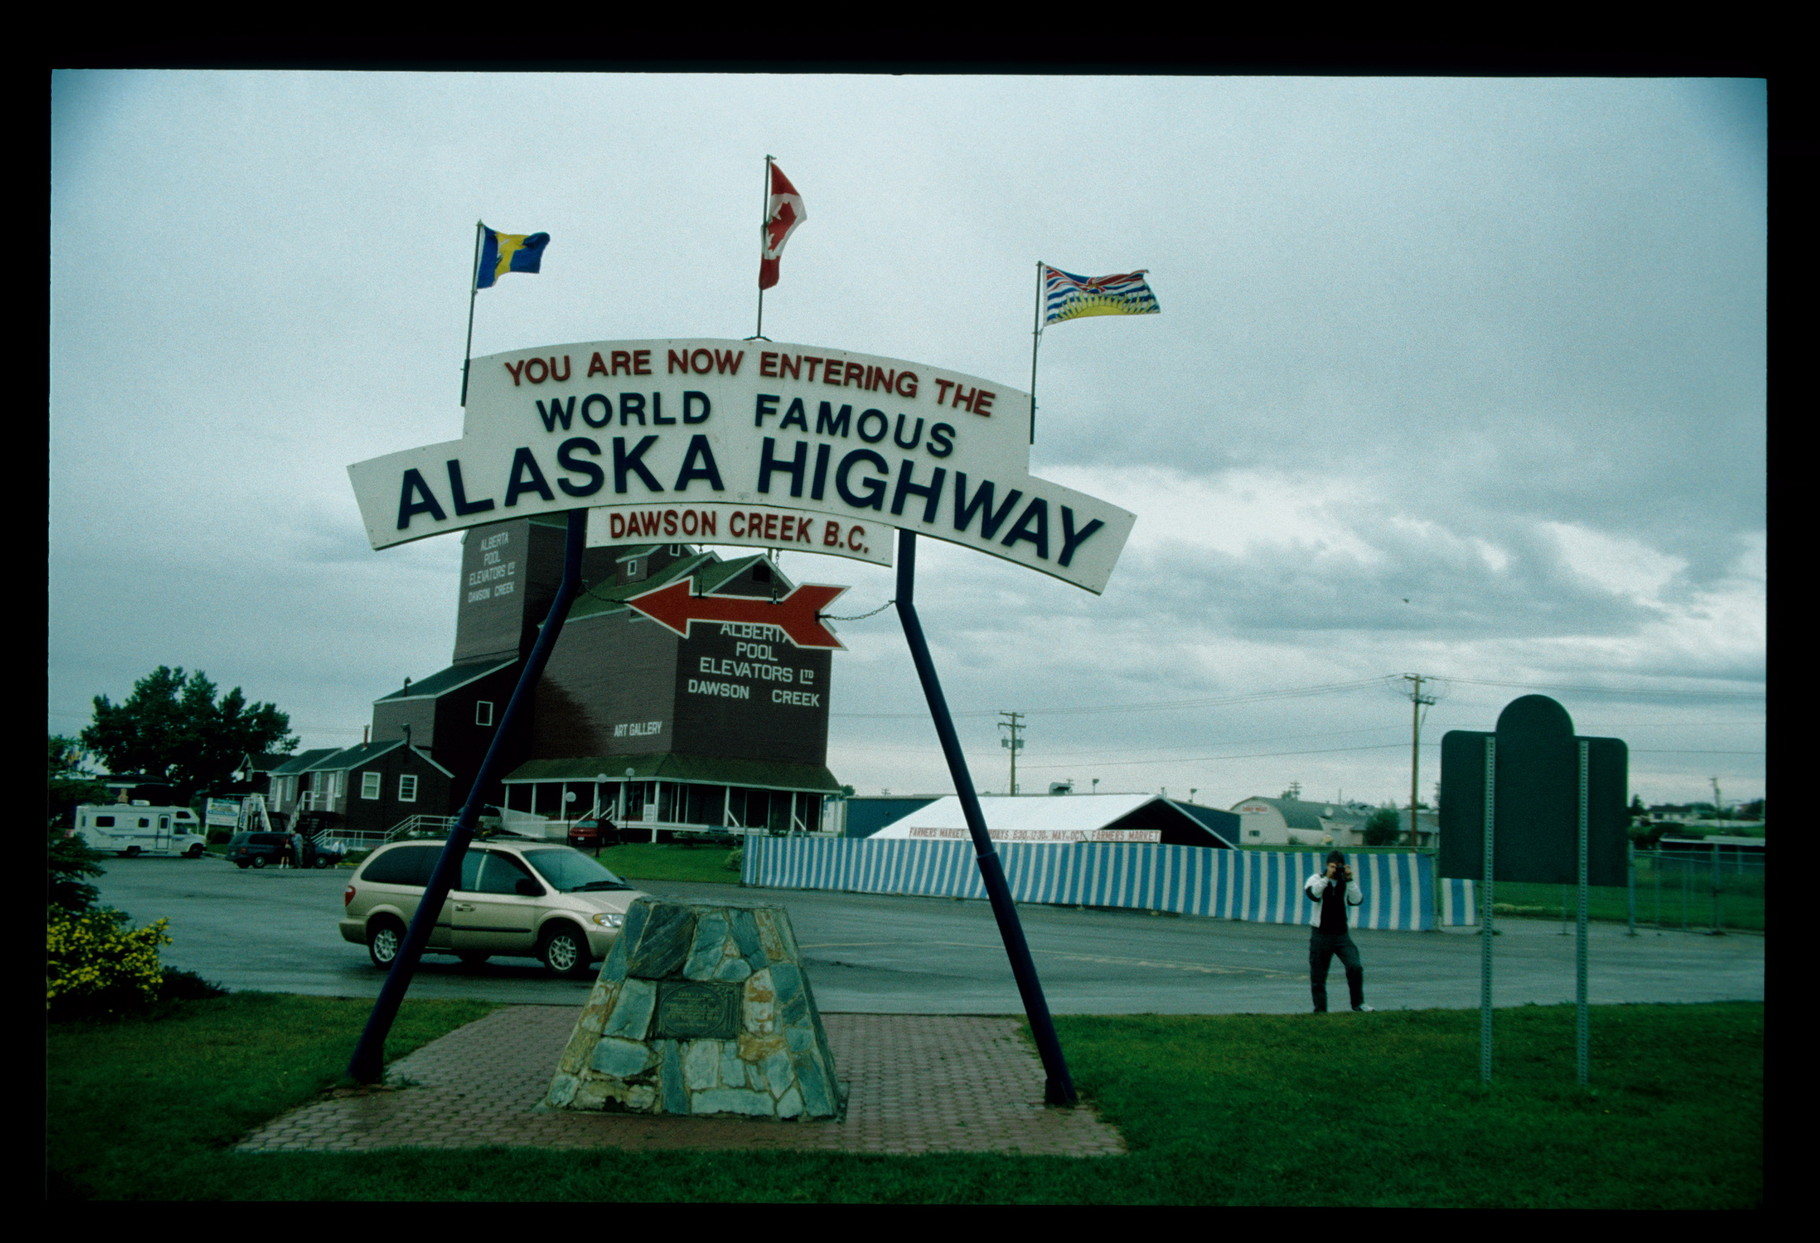 Dawson Creek - Beginn des Alaska Highways